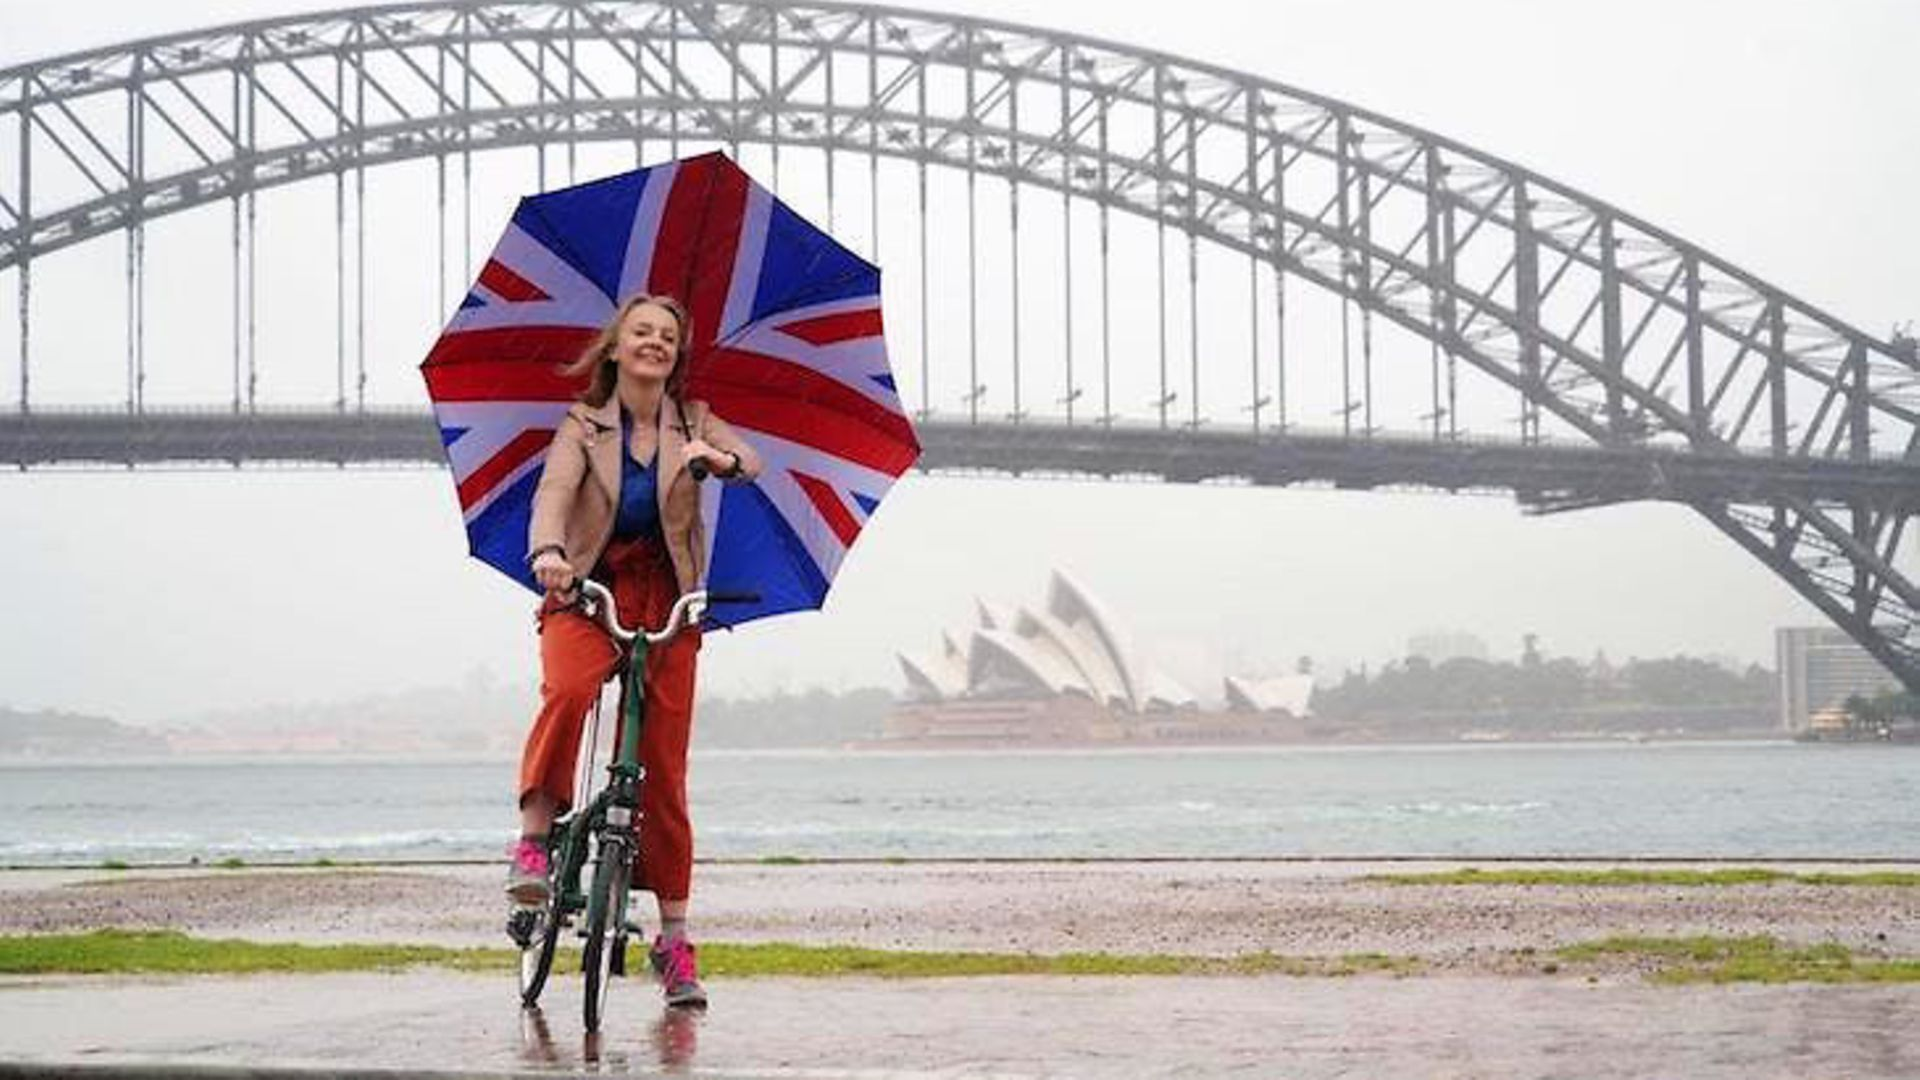 Liz Truss poses with a union flag umbrella as she takes visits Syndey to promote post-Brexit Britain - Credit: Twitter